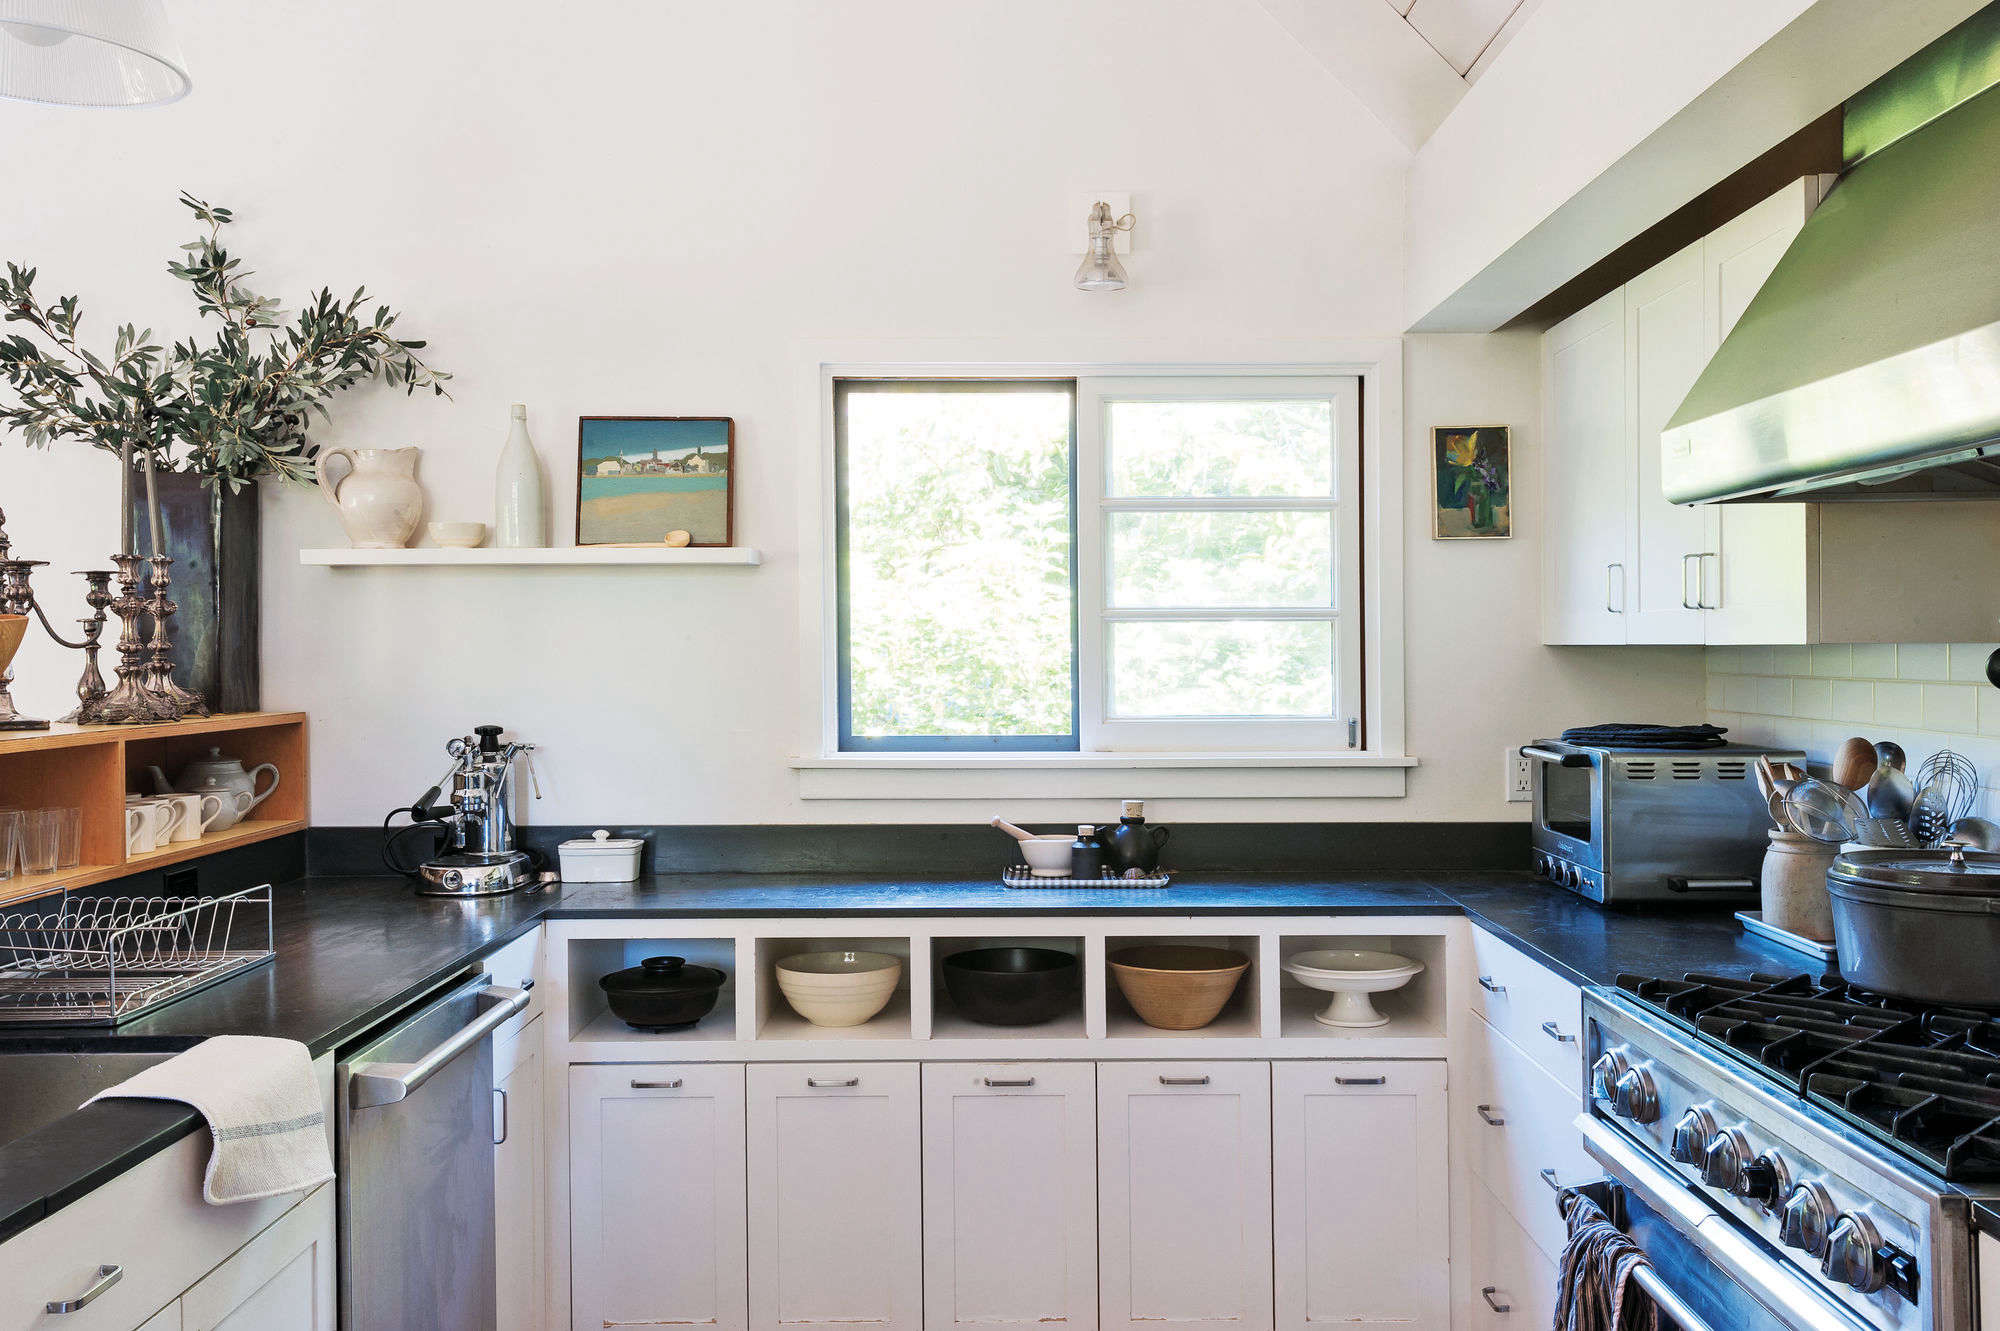 2017 01 diy kitchen cabinets in south africa - 2017 01 Diy Kitchen Cabinets In South Africa Julie Carlson Kitchen Mill Valley Download